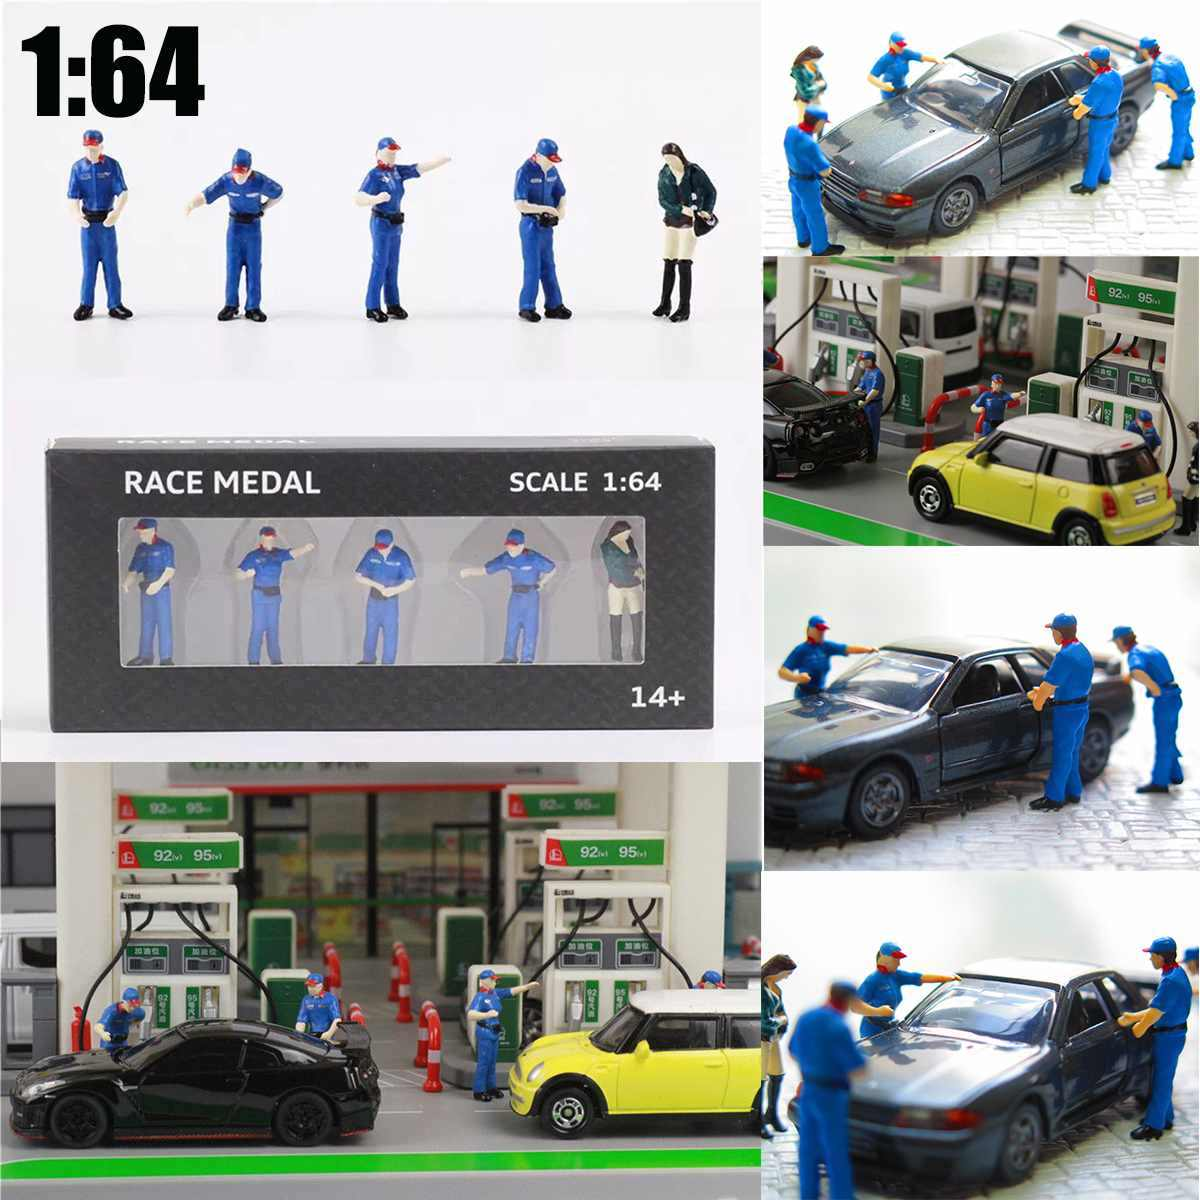 1:64 Scale City model Gas station Scenario Model For Race Medal  Matchbox Greenlight Chirldren Toy Technician Group People Mode